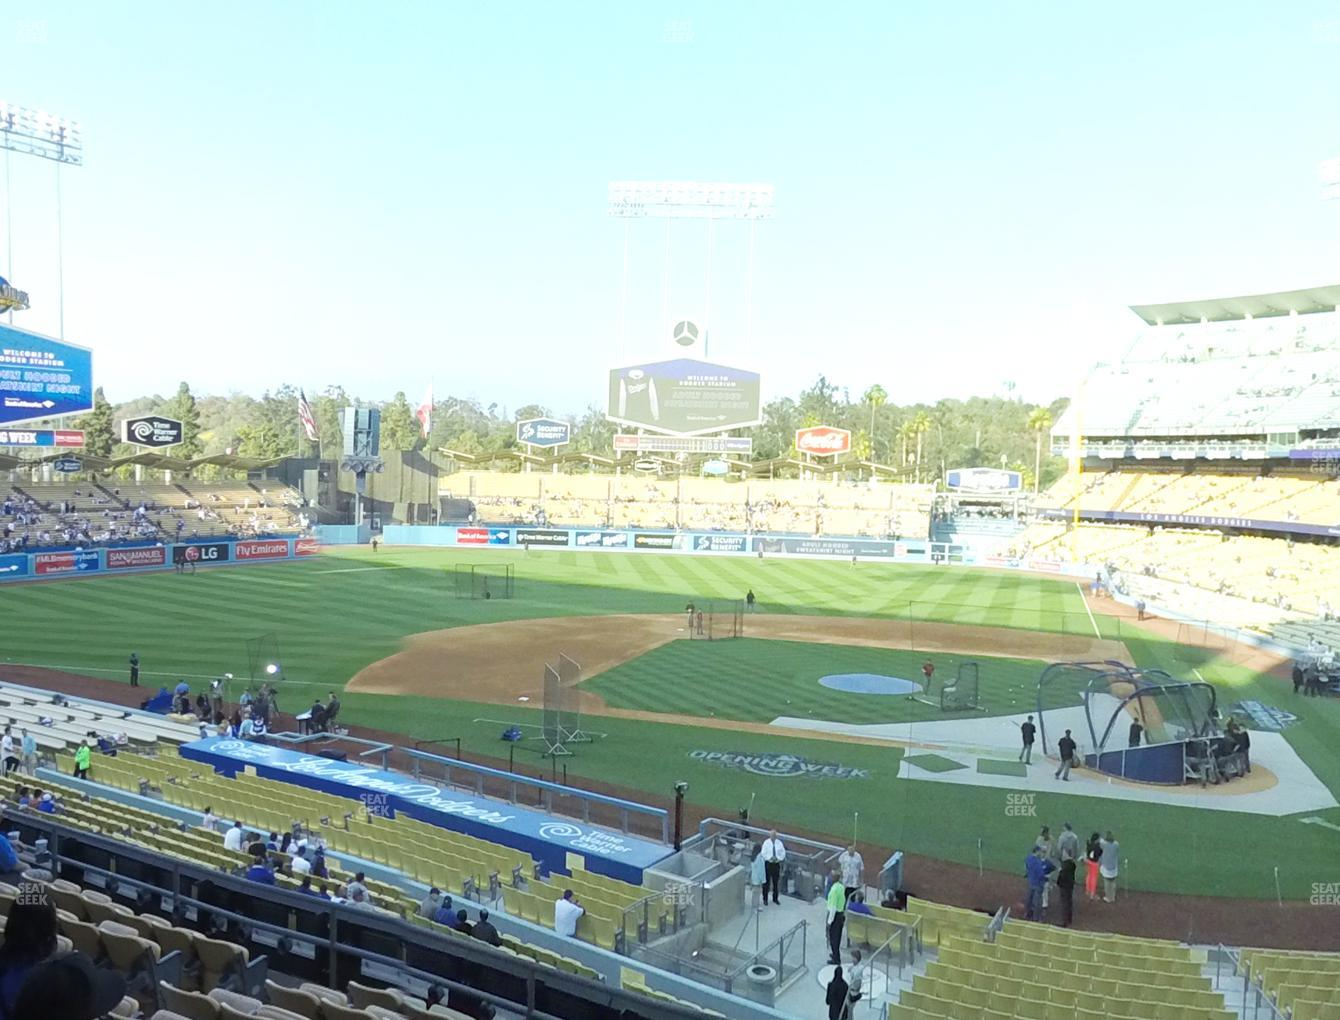 Los Angeles Dodgers at Dodger Stadium Loge Box 121 View